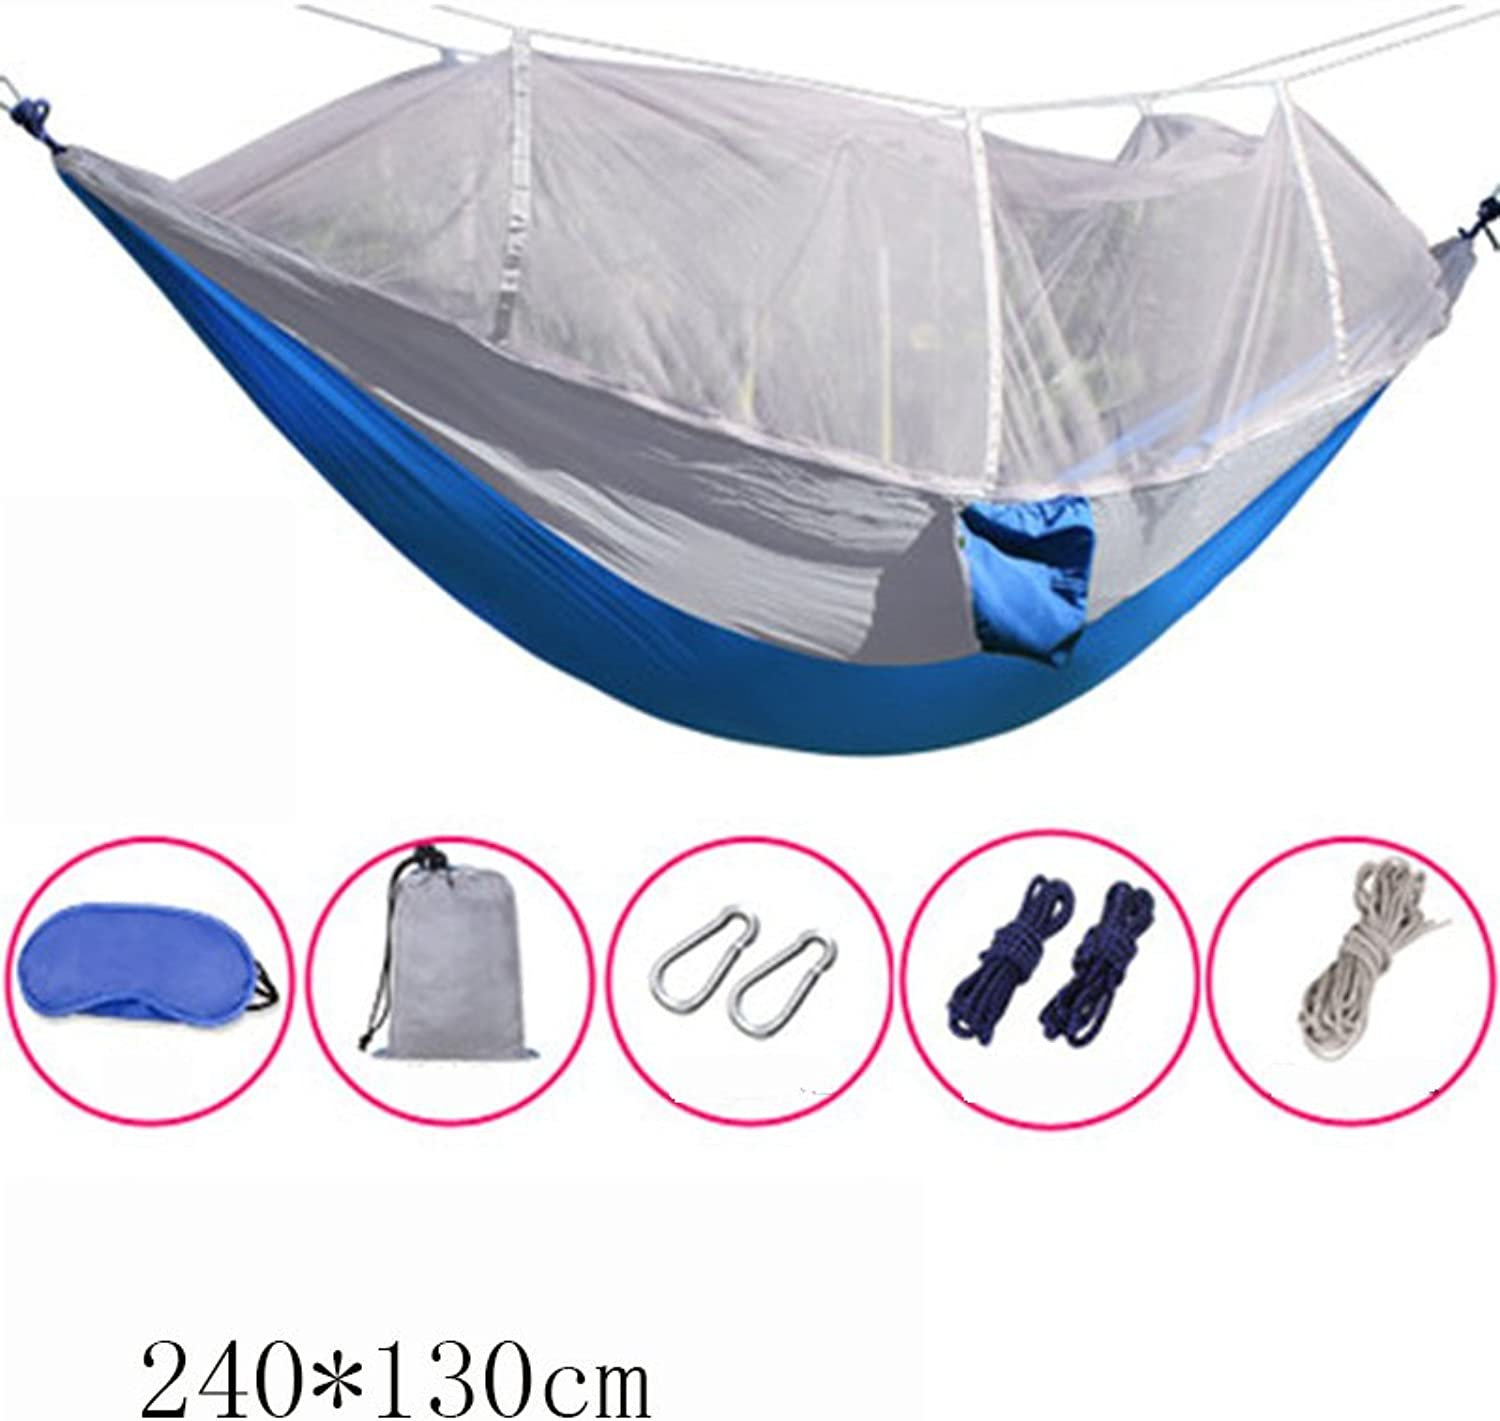 WOAINI Camping Hammock with Mosquito Net, Outdoor Hammock Travel Parachute Cloth Portable with Mosquito Net Camping Hammock Green 240X130(94.5X51.2in) (color   C)